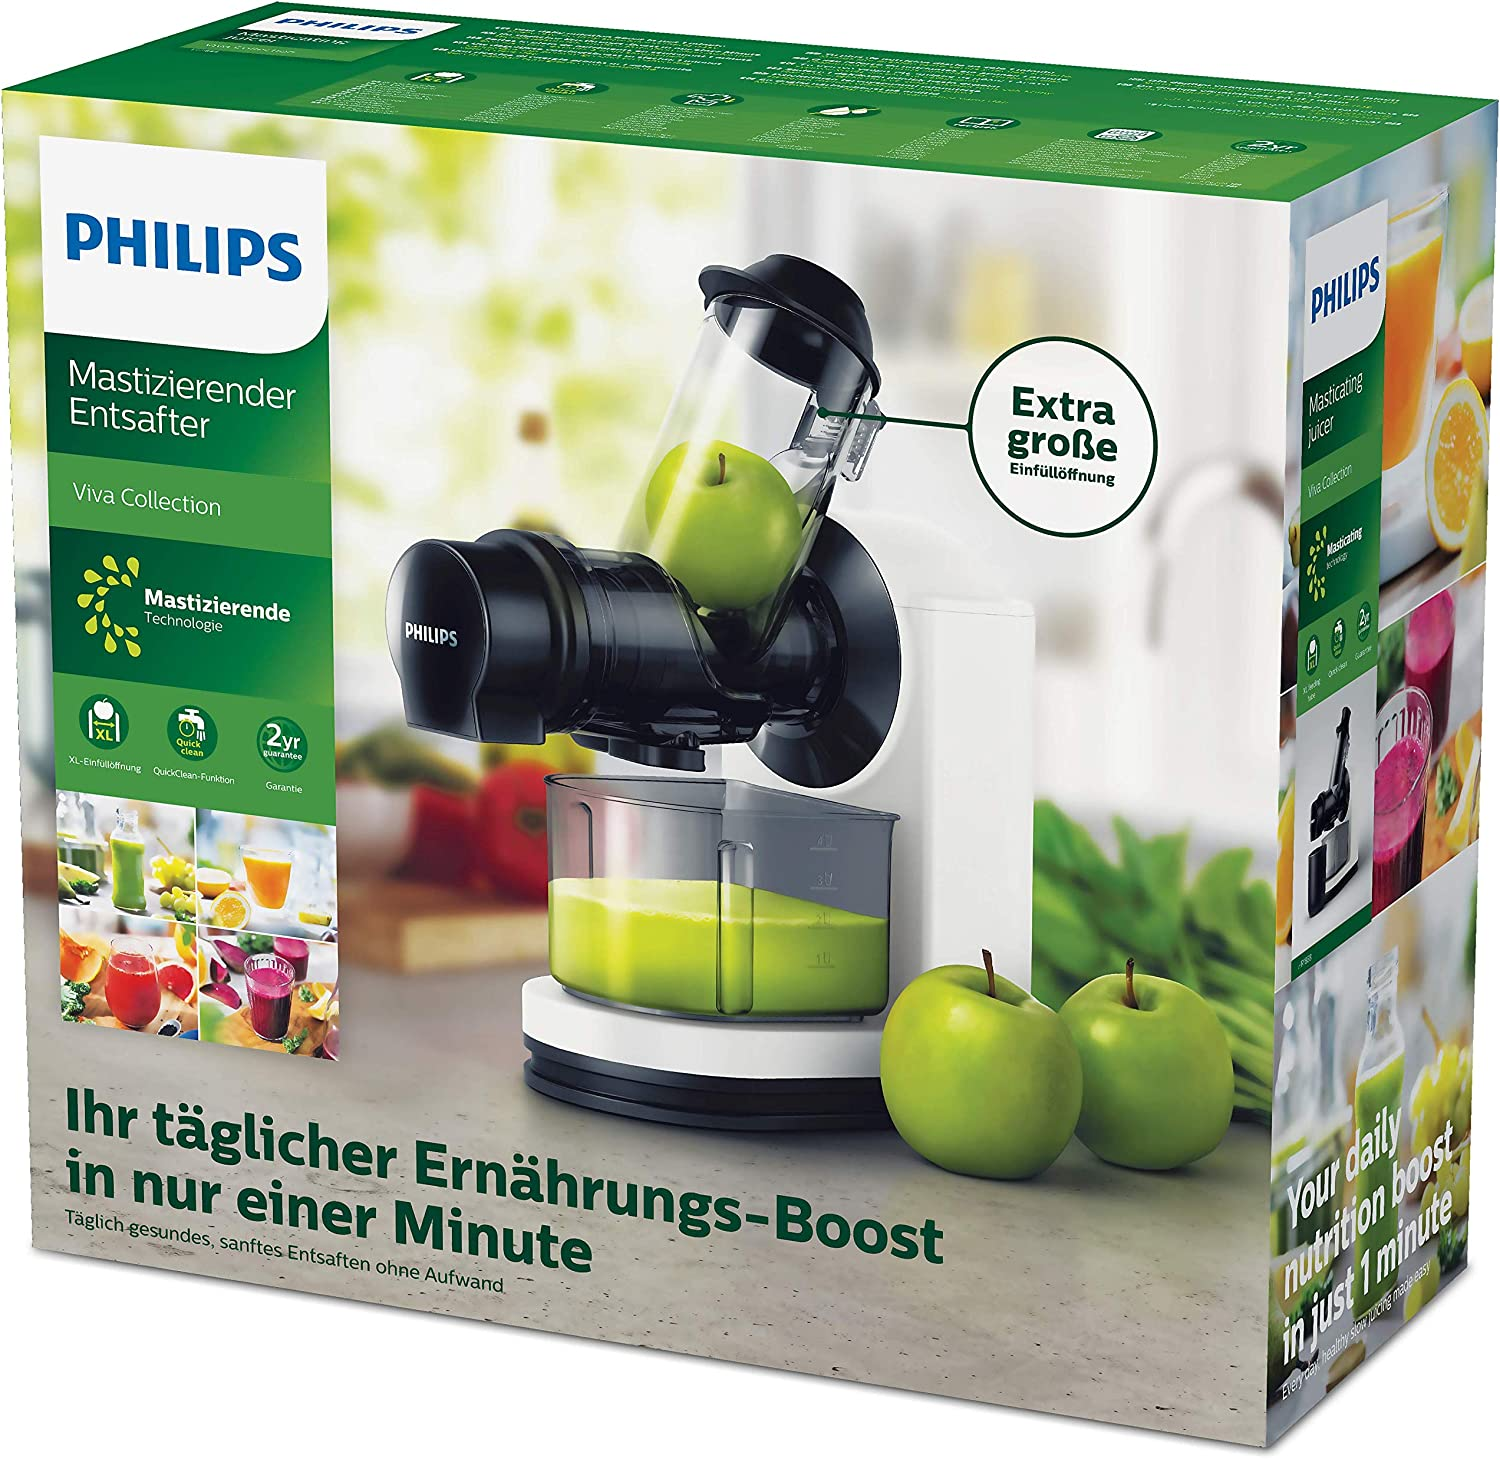 Philips HR1889/70 Extracteur de jus Bianco